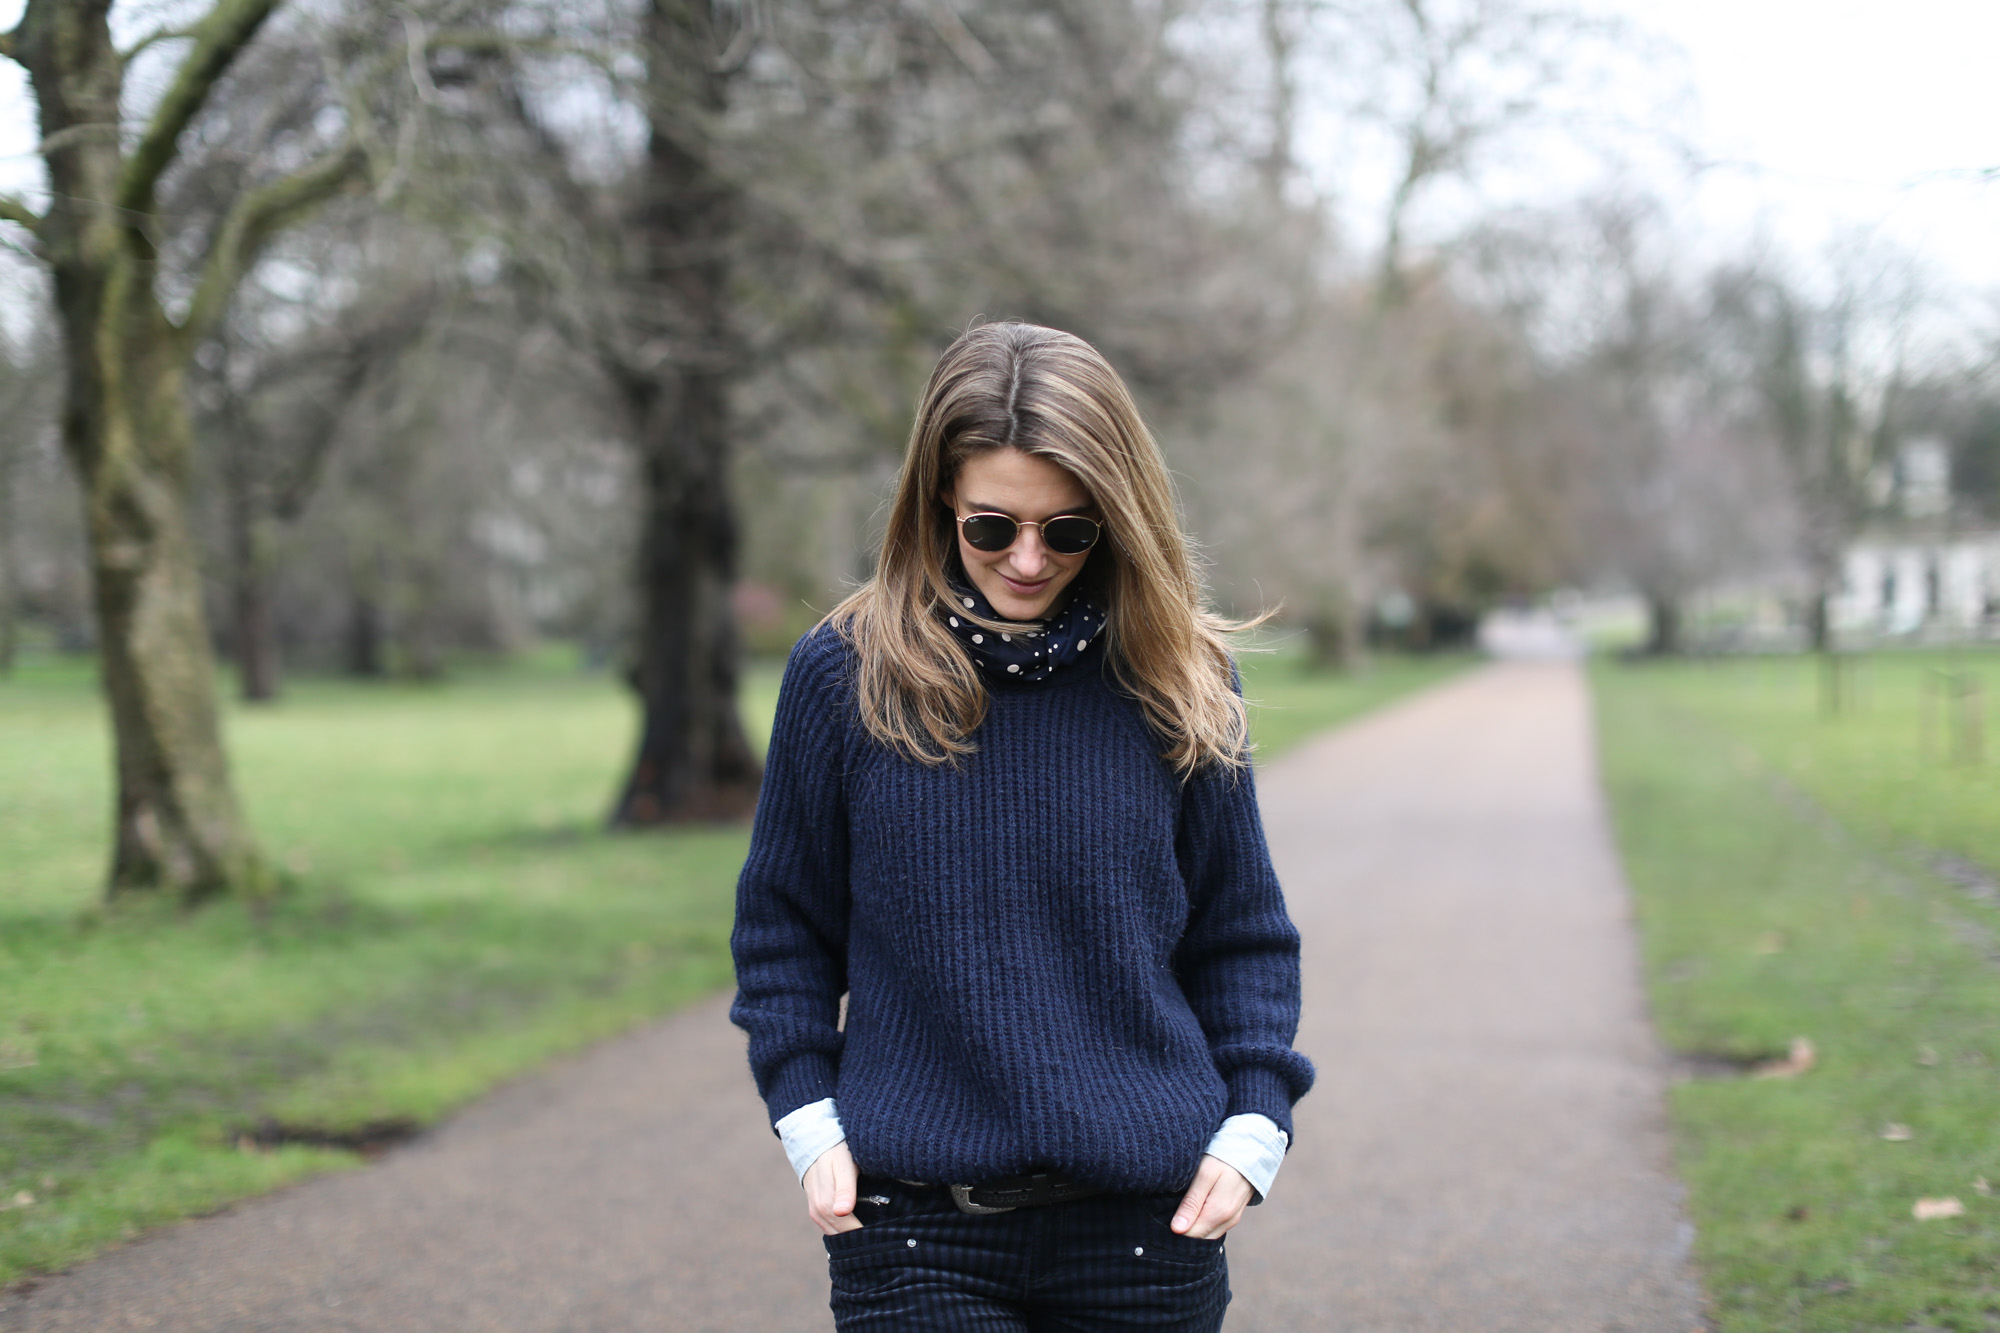 Clochet-streetstyle-london-hyde-park-cos-coat-navy-chunky-knit-11